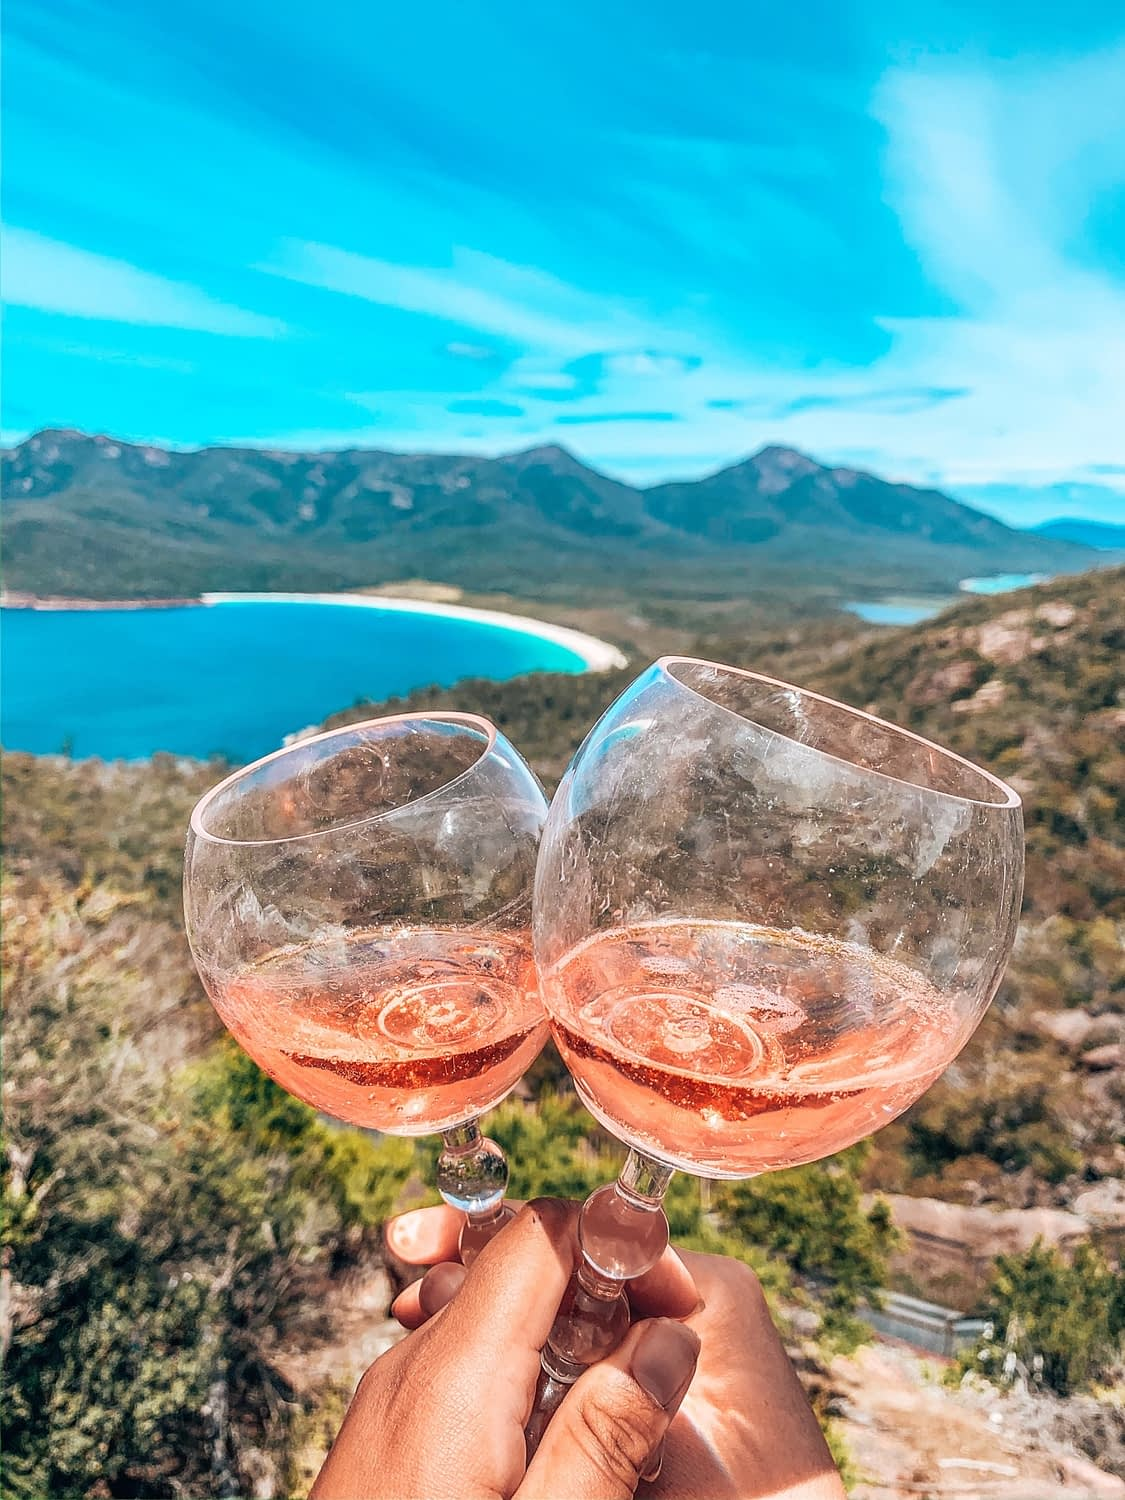 Freycinet WIne Glass Bay - Two wine glasses of Rosé clinking with wineglass bay visible through the glass - Lap of Tasmania